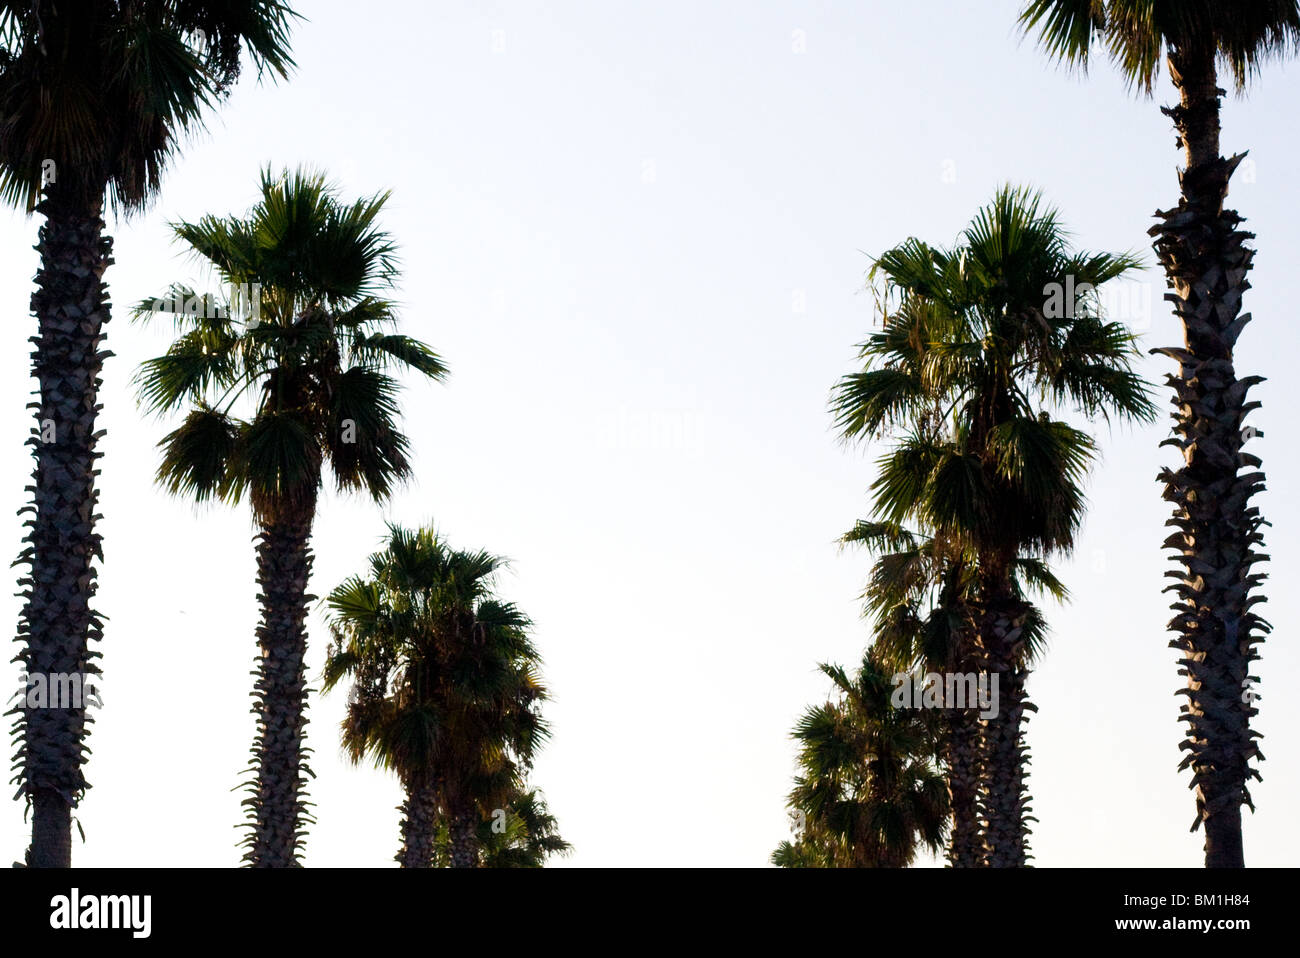 Palm trees in barclona right by the sea/ beach - Stock Image